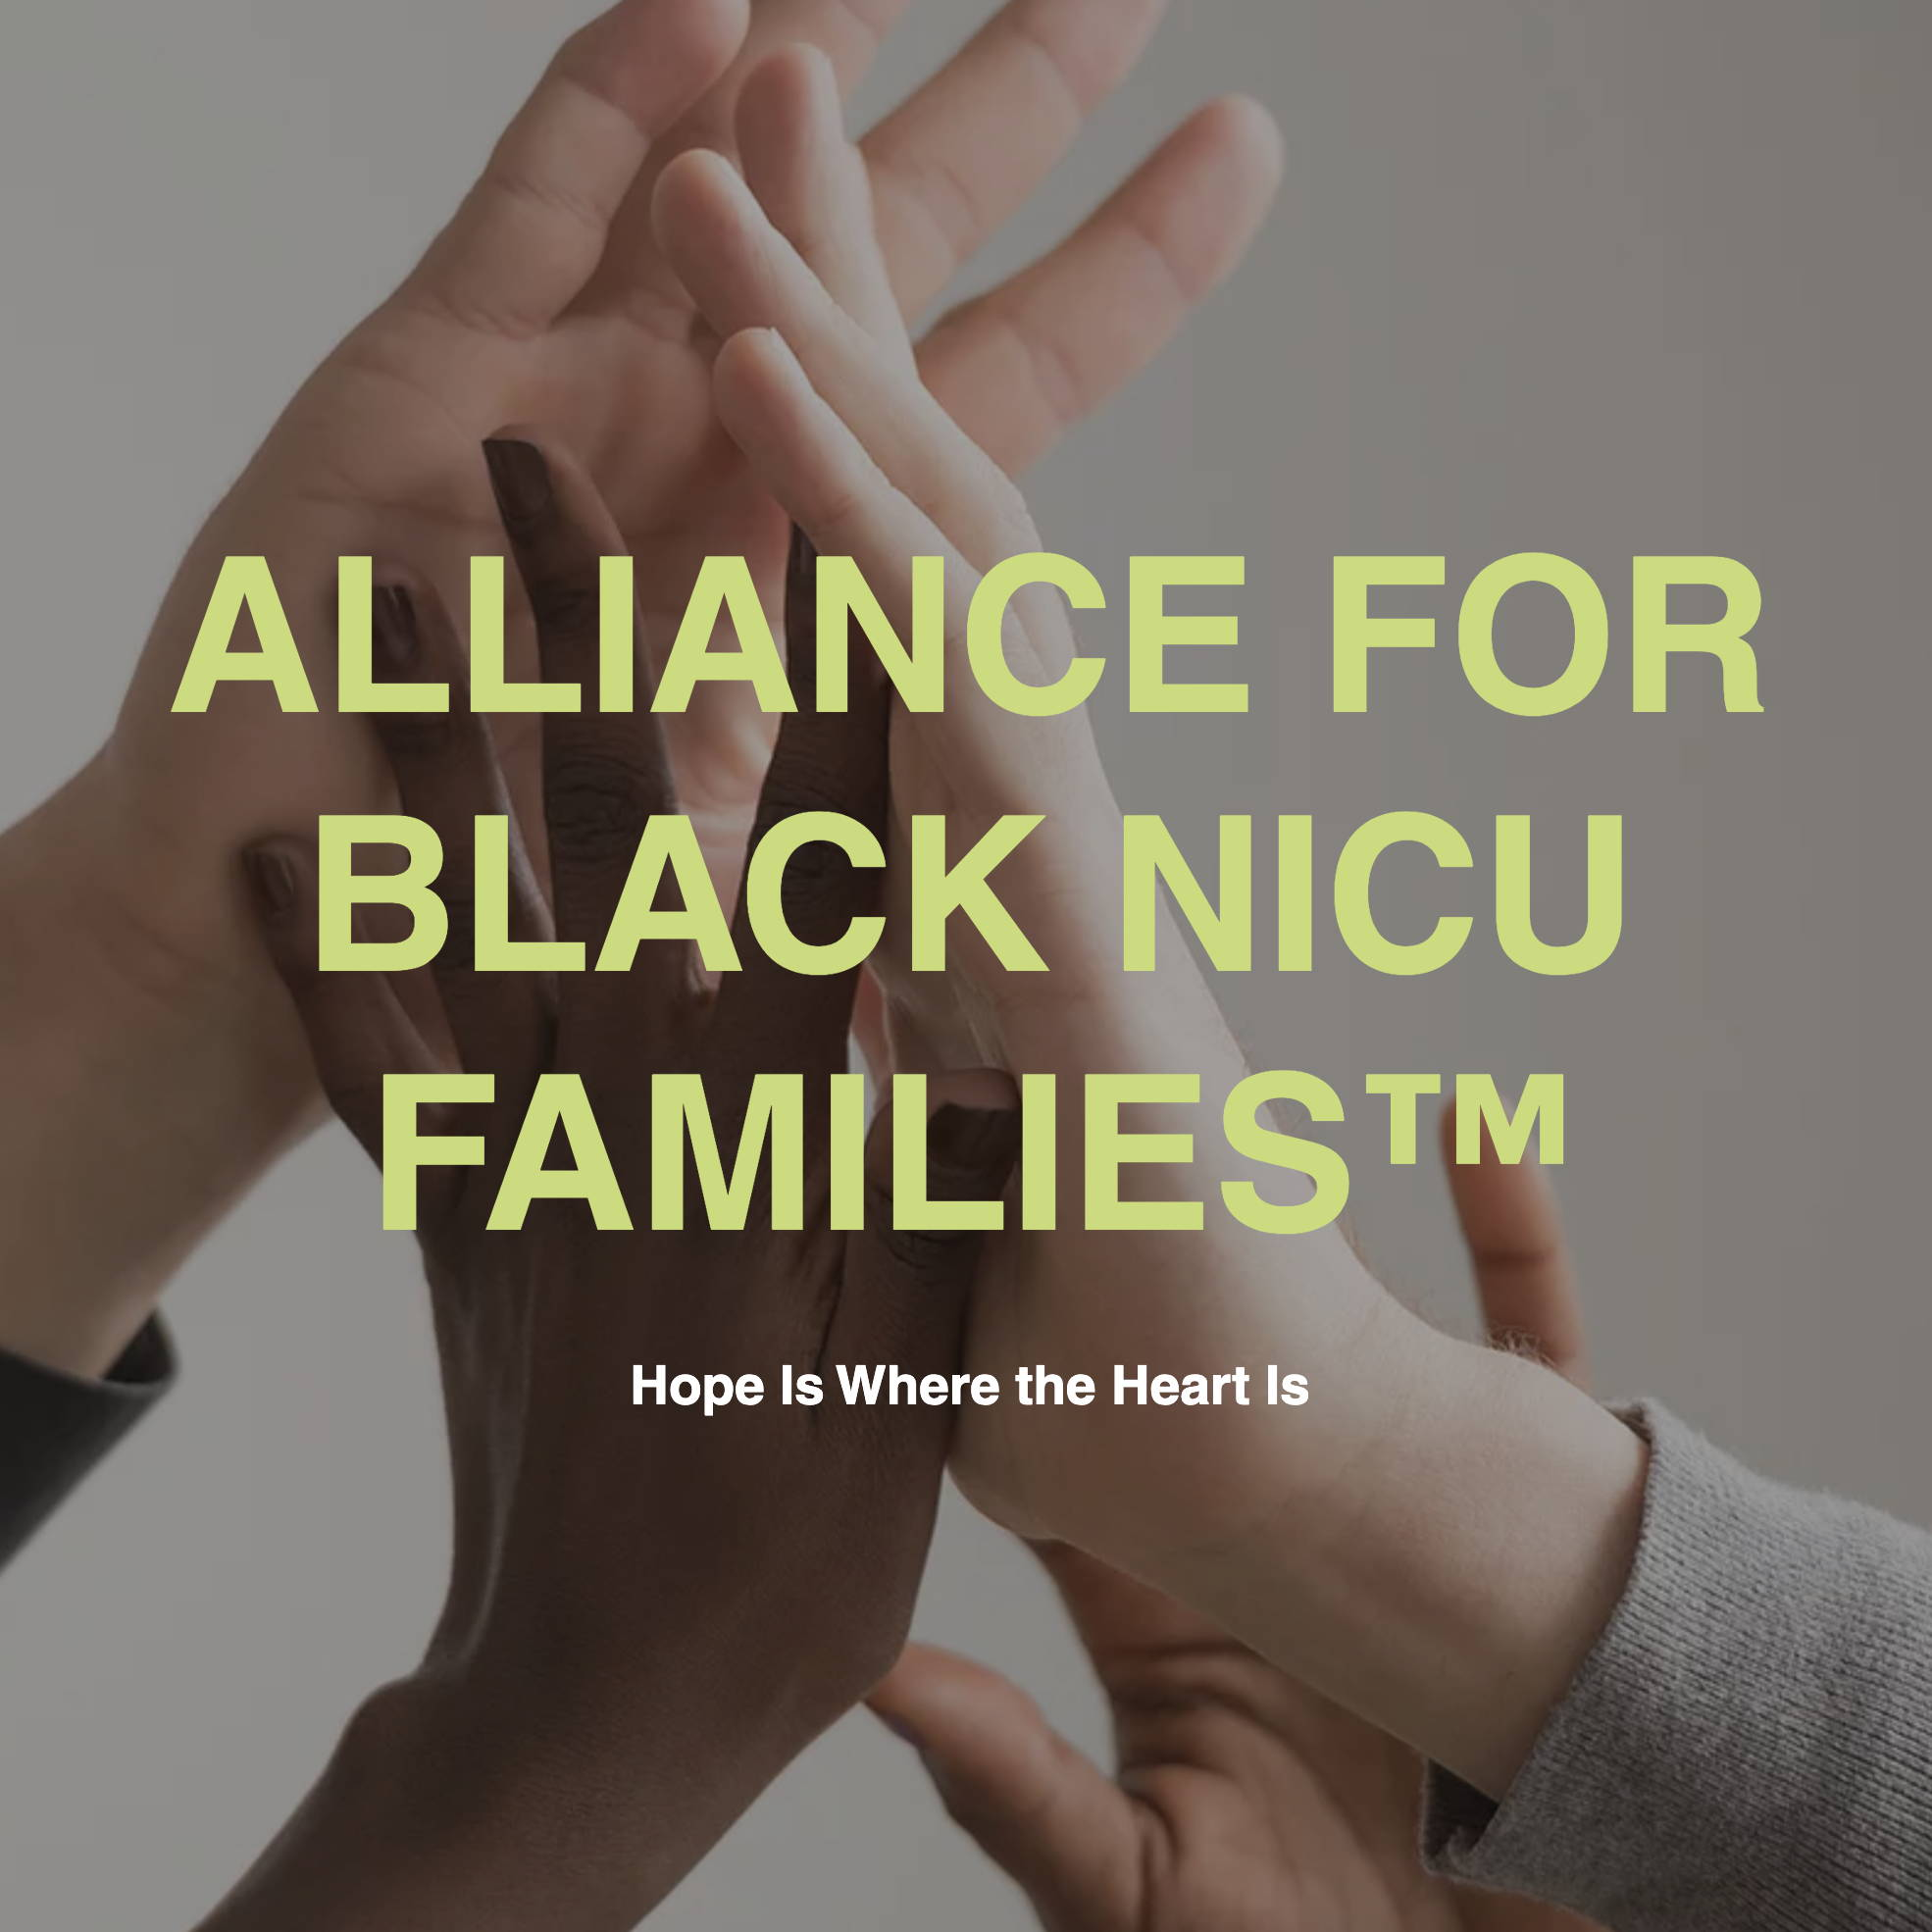 multiracial hands joined together in group high five